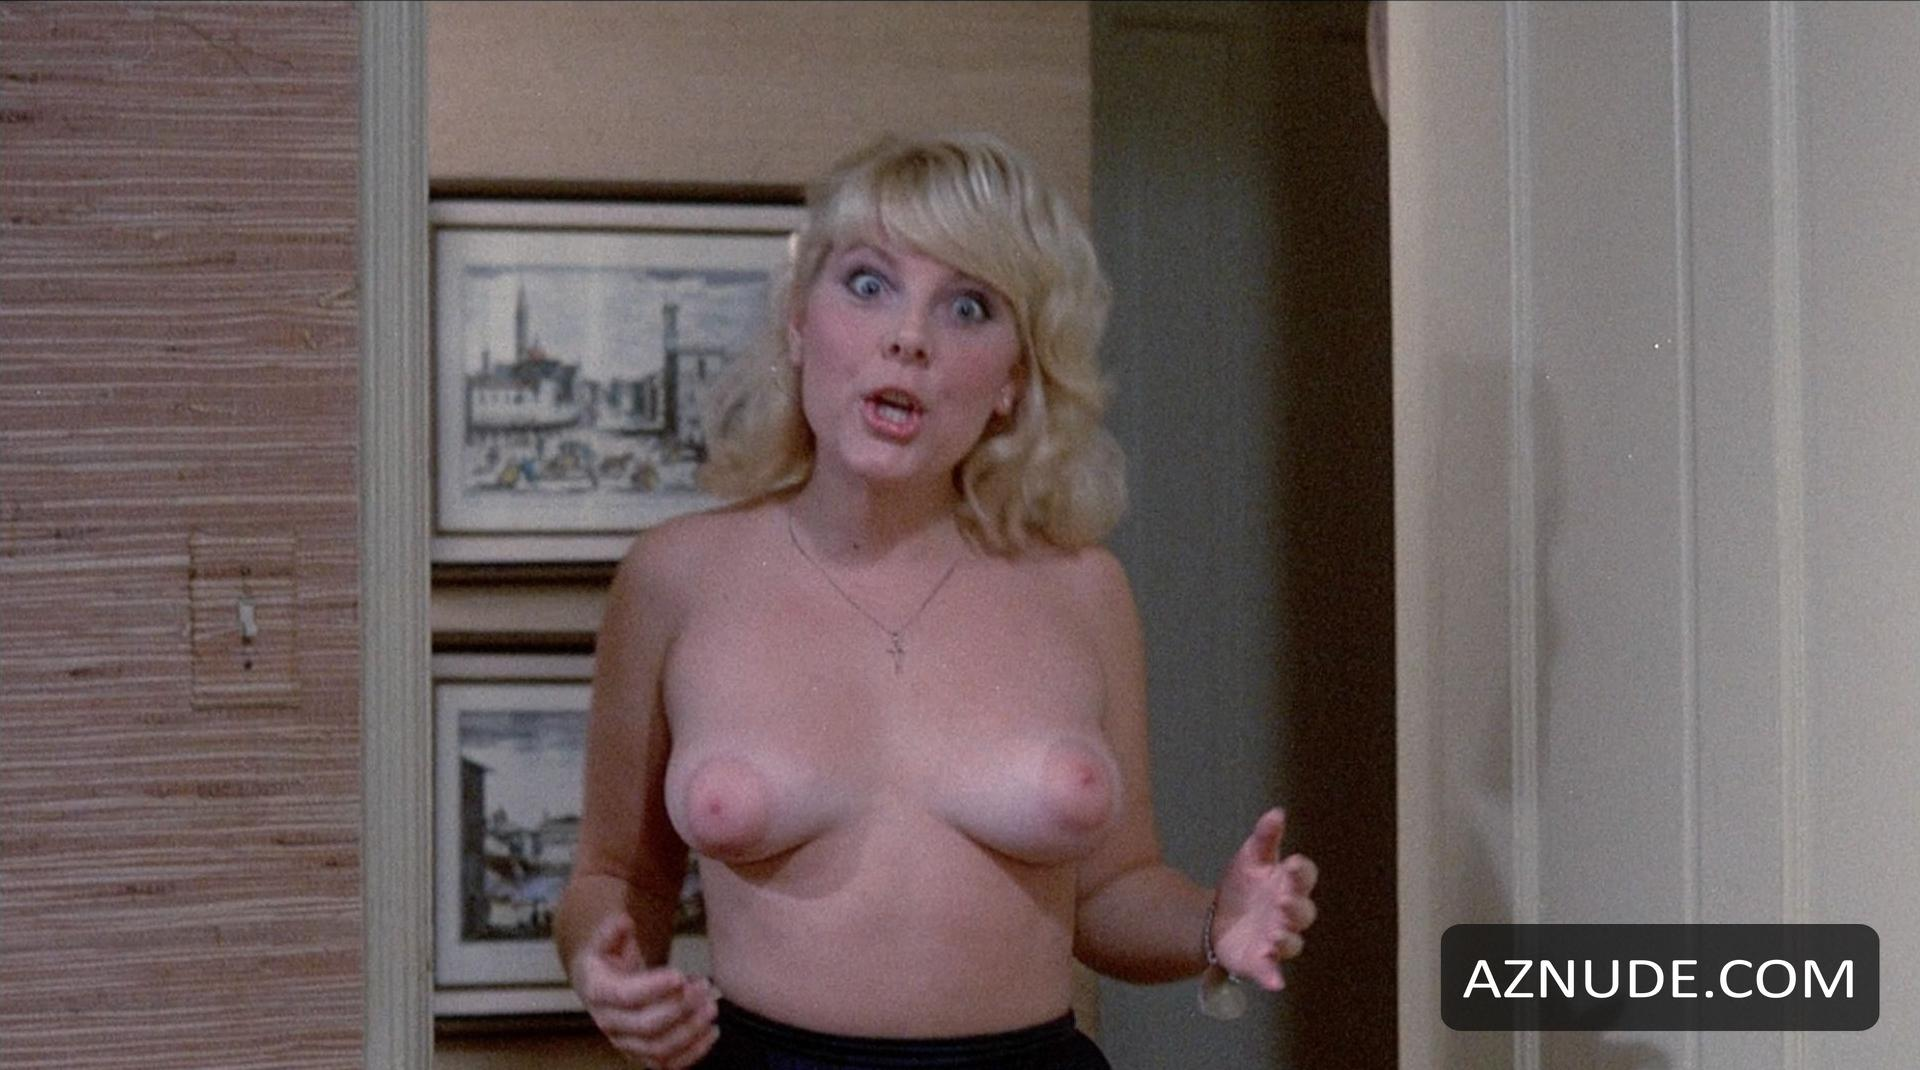 Diane franklin nude scene in the last american virgin scandalplanetcom 1